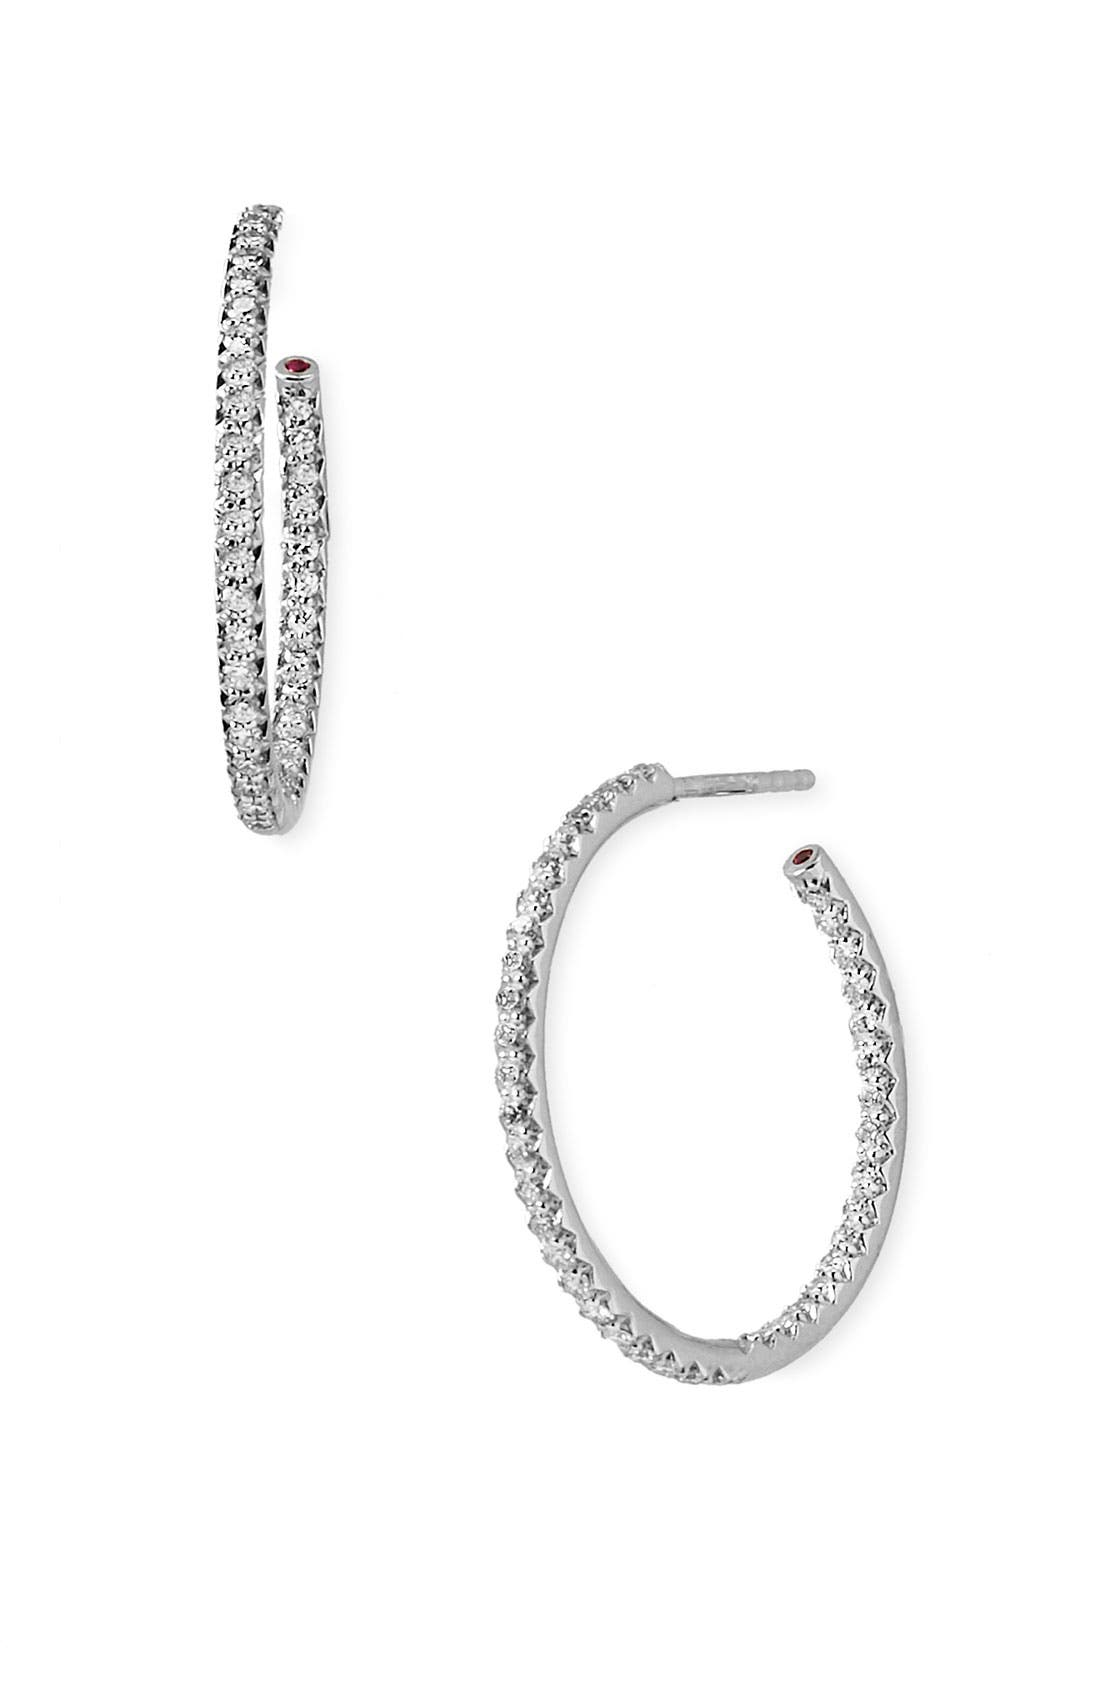 Alternate Image 1 Selected - Roberto Coin Medium Diamond Hoop Earrings